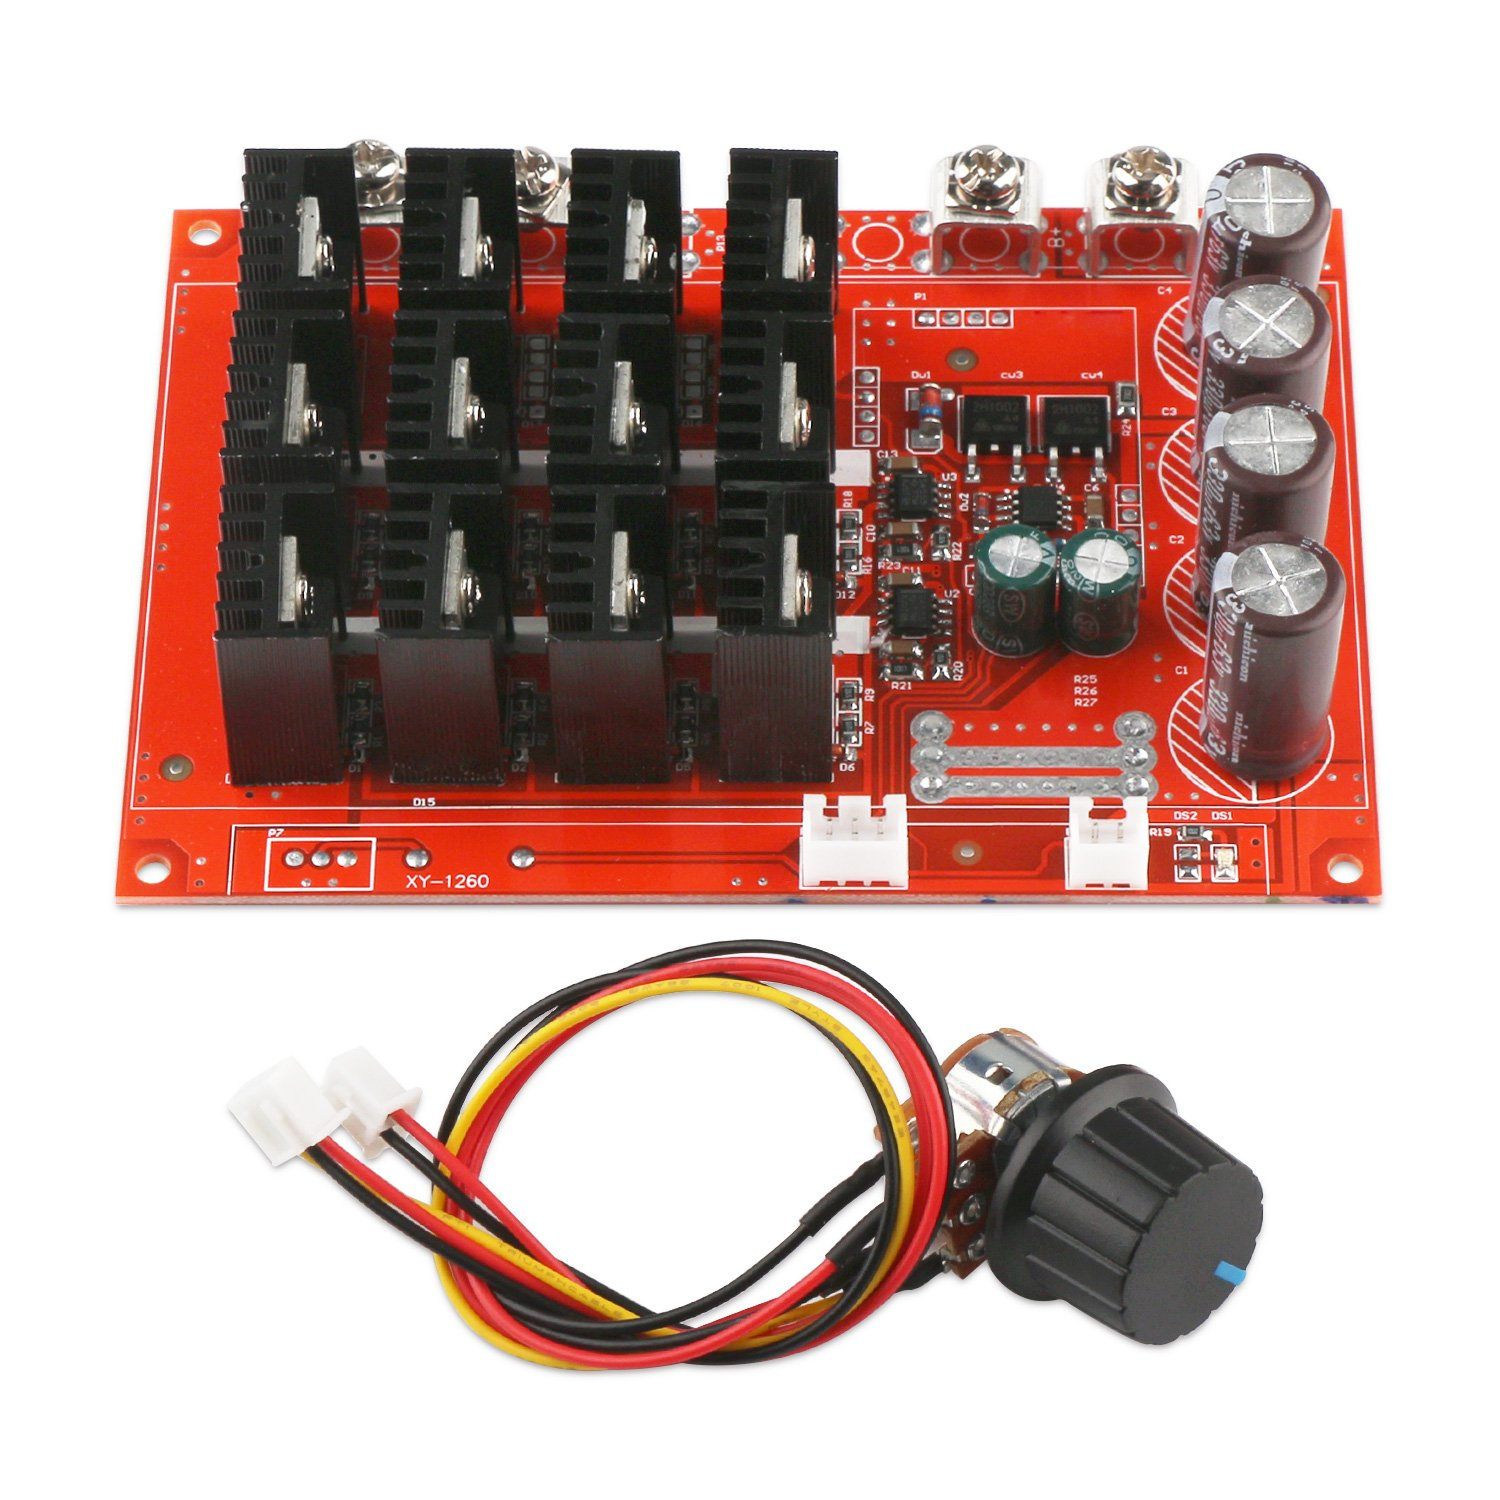 Motor Speed Control Board, DROK DC 10-50V 60A High Power Motor Speed Controller PWM HHO Driver Controller Module 12V 24V 48V 3000W Extension Cord with Switch